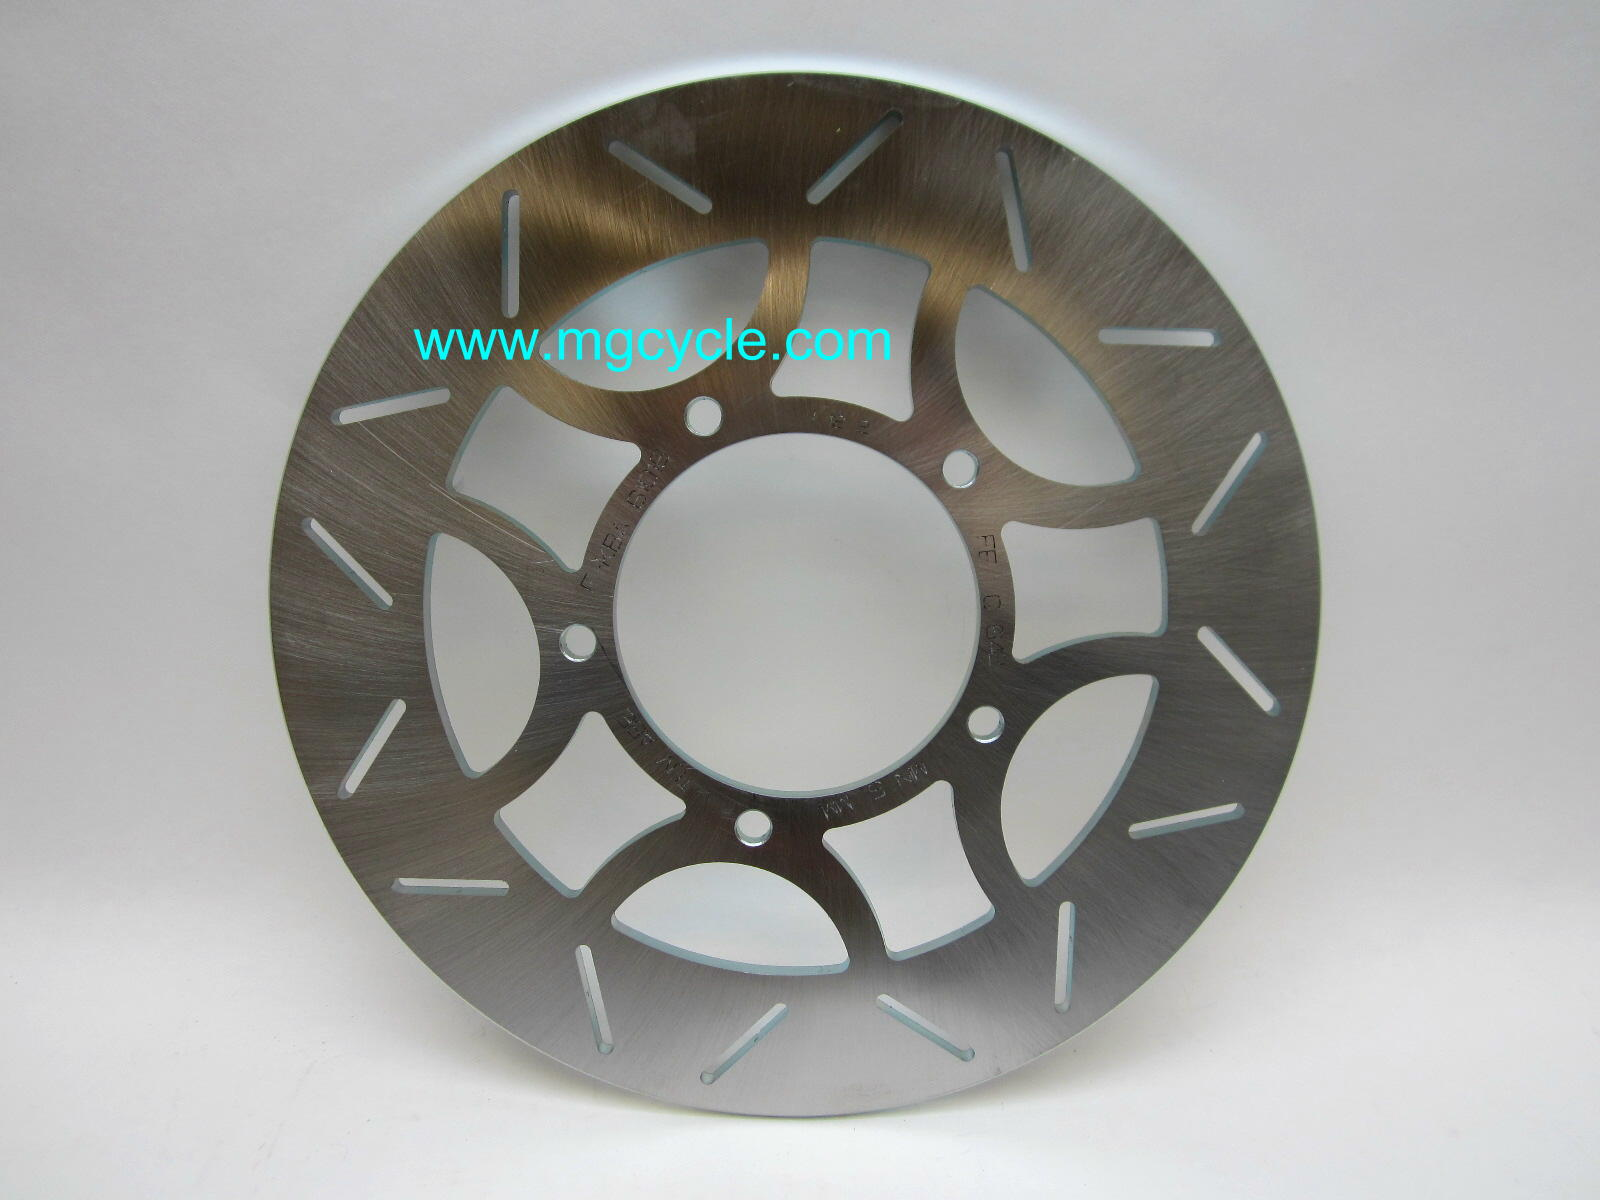 270mm brake disk for 1000 SPII, V65 Lario, some 850T5